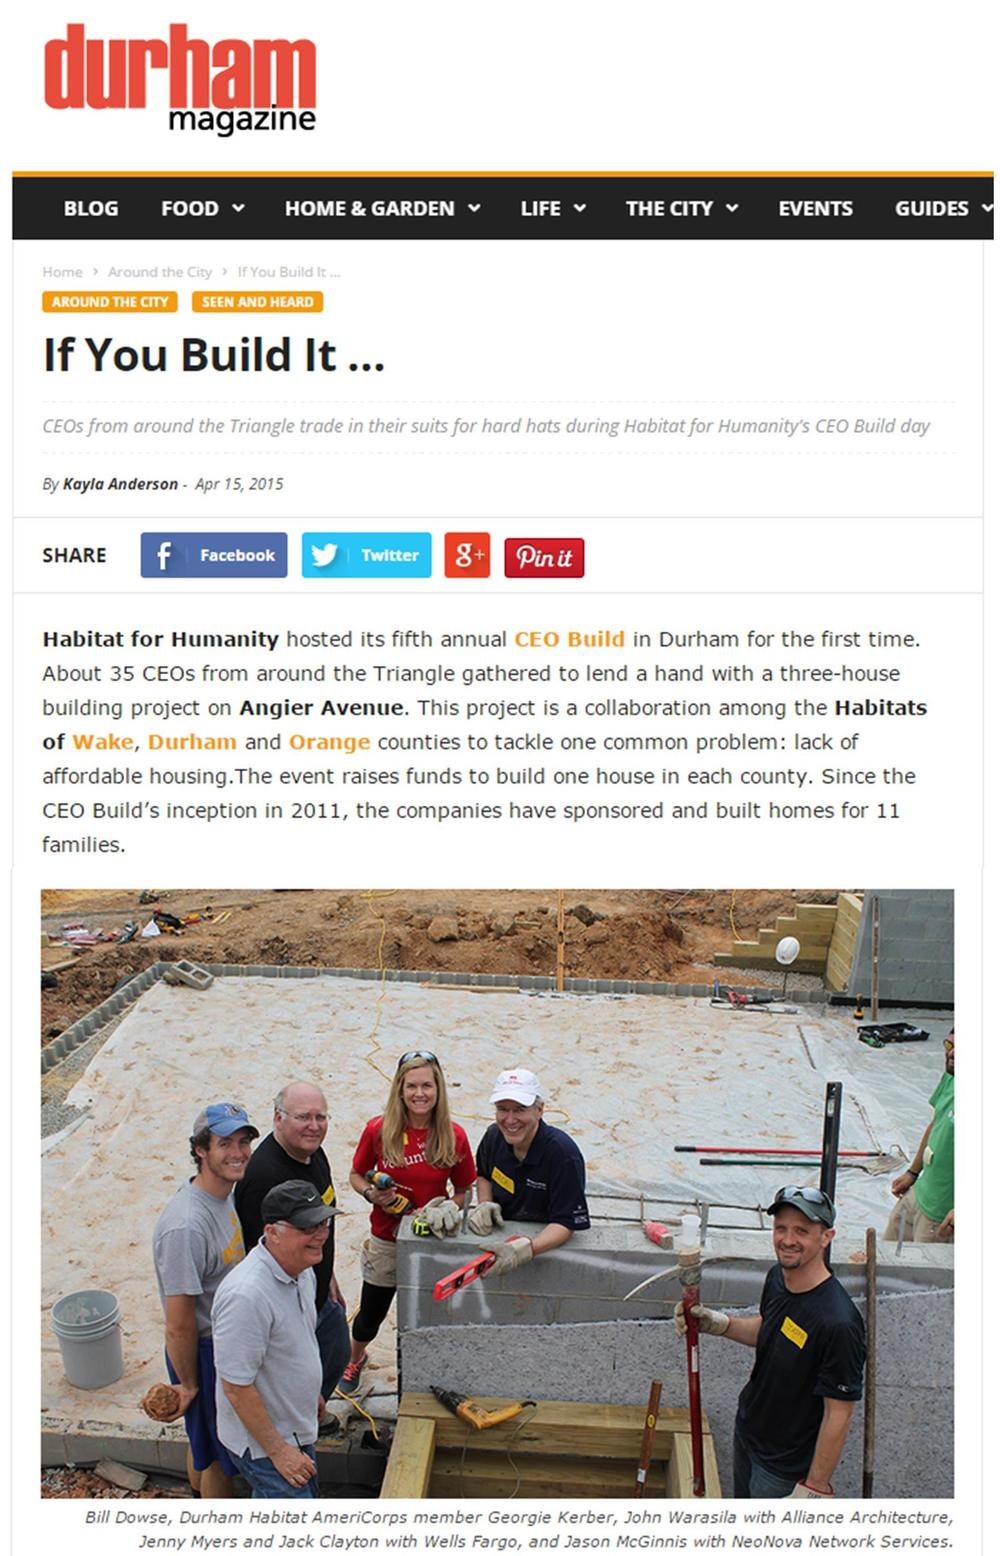 Durham Magazine CEO Build 2015